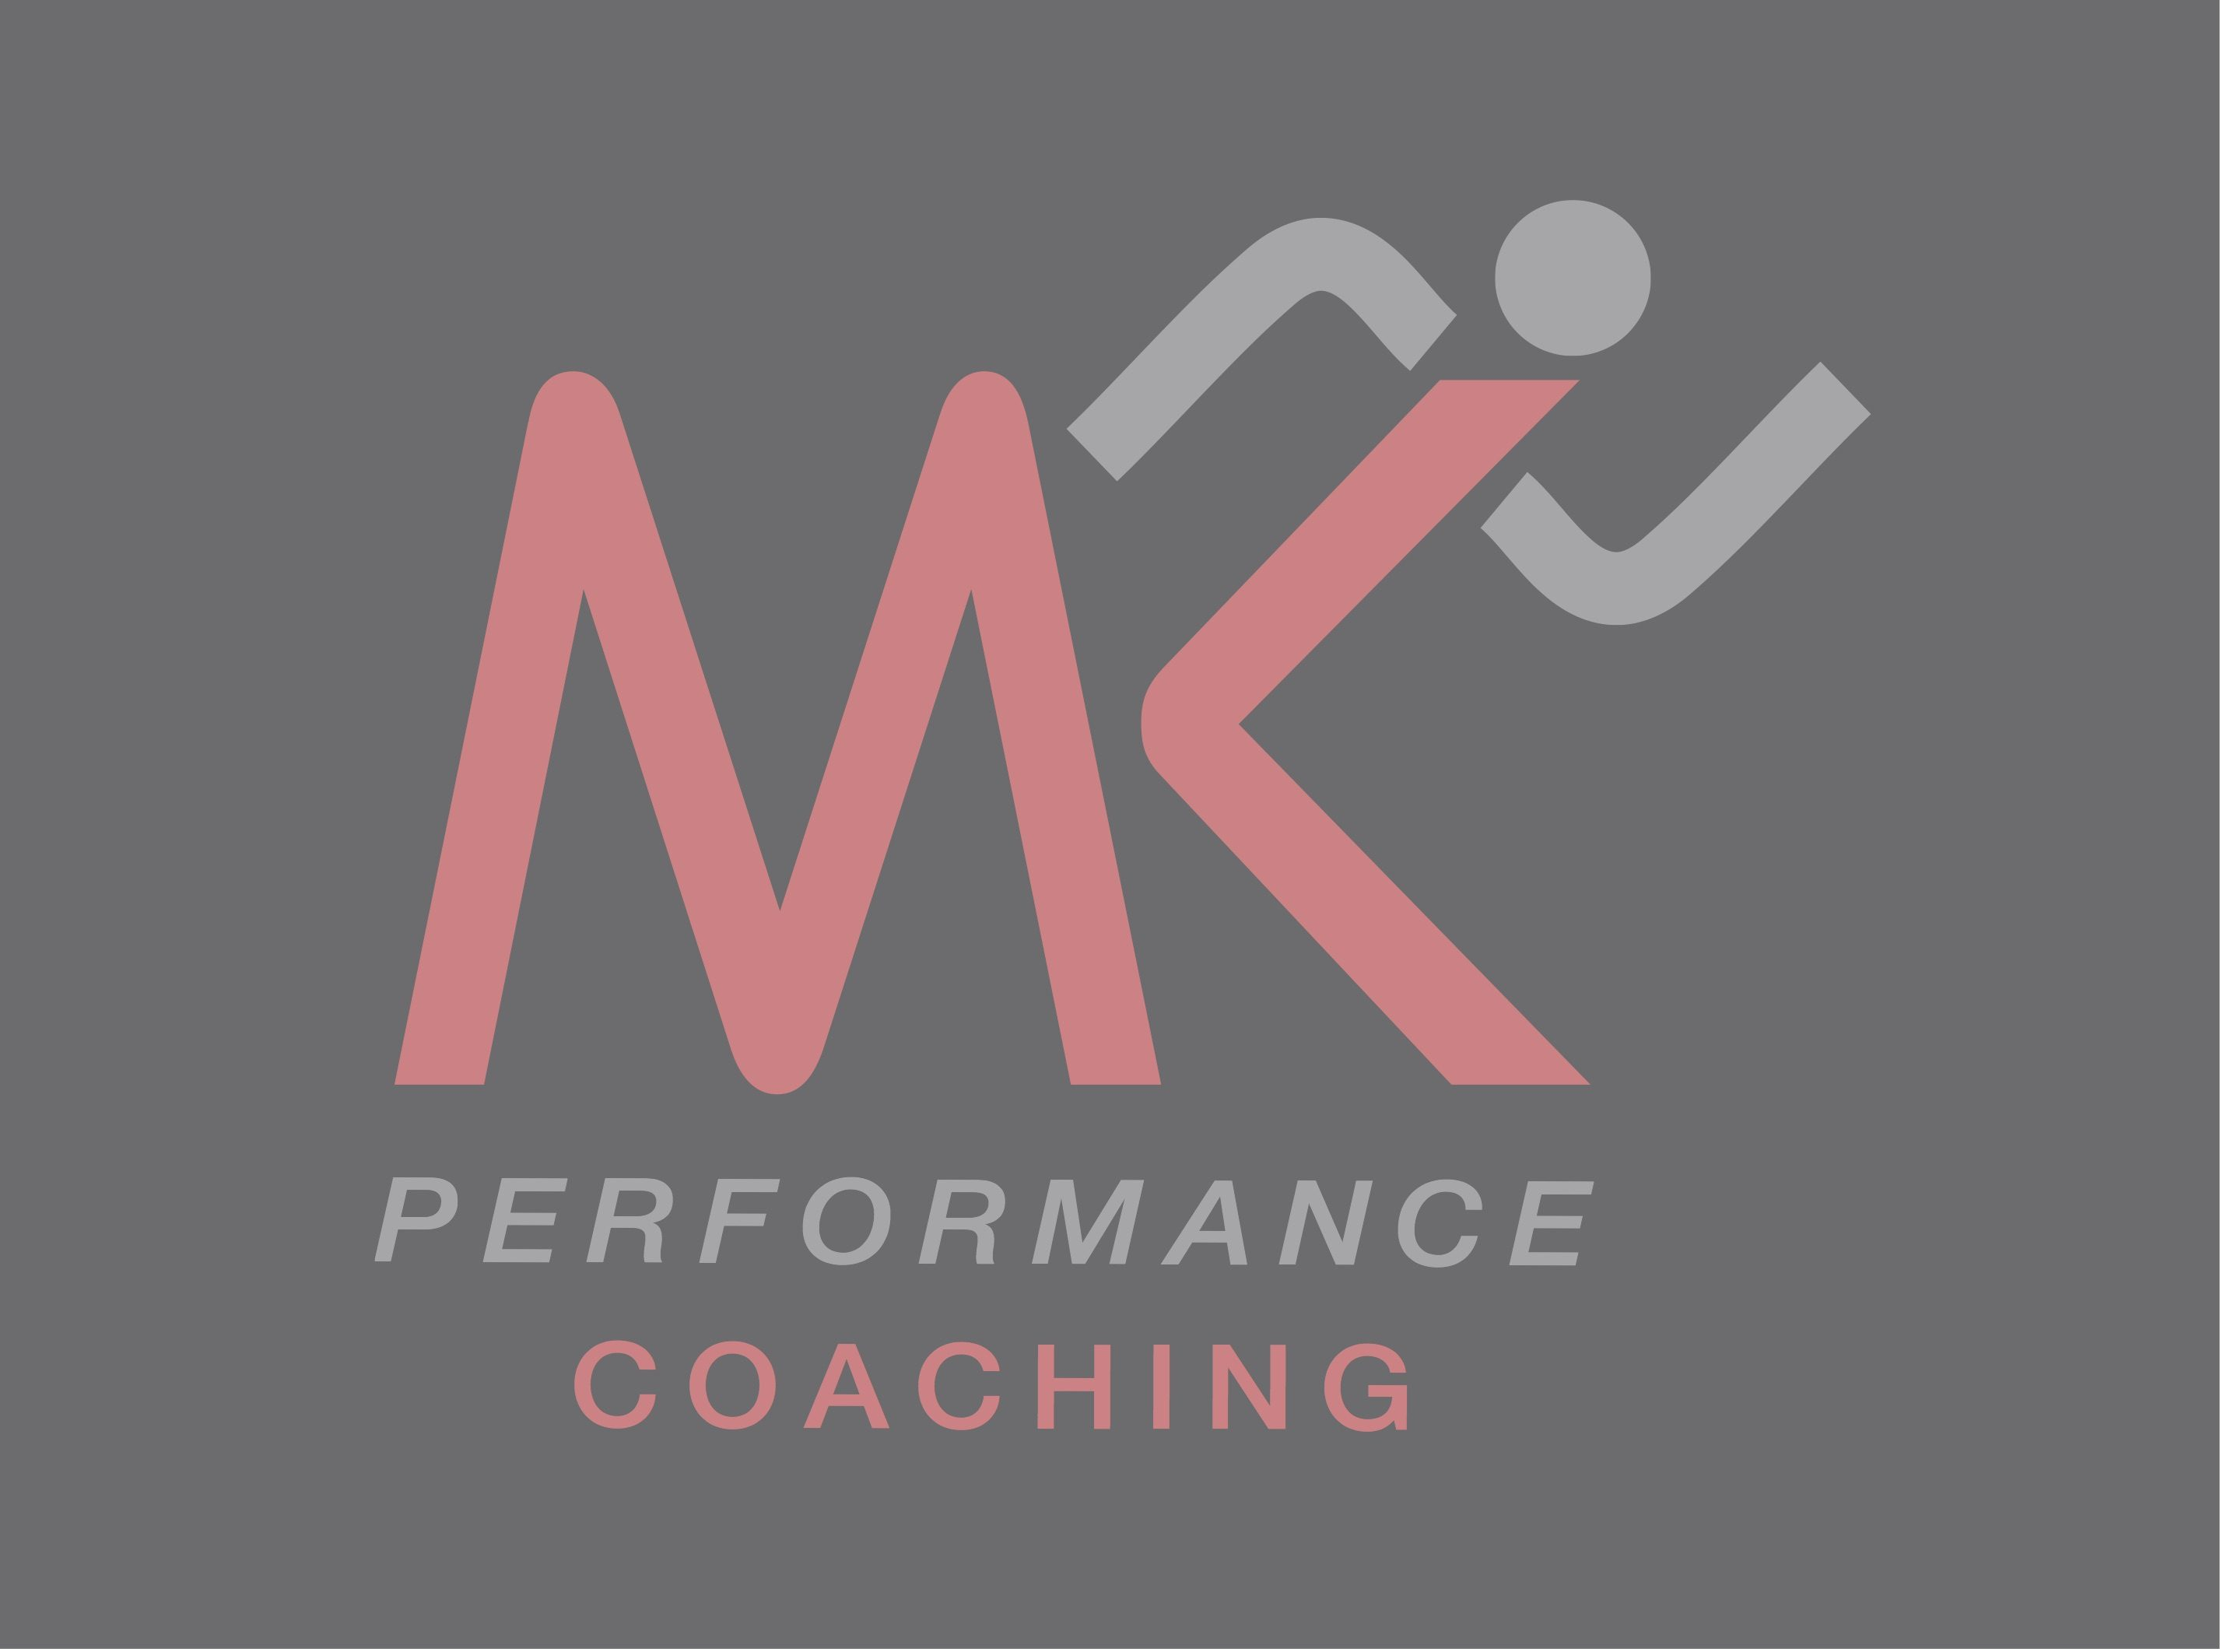 MK Performance Coaching